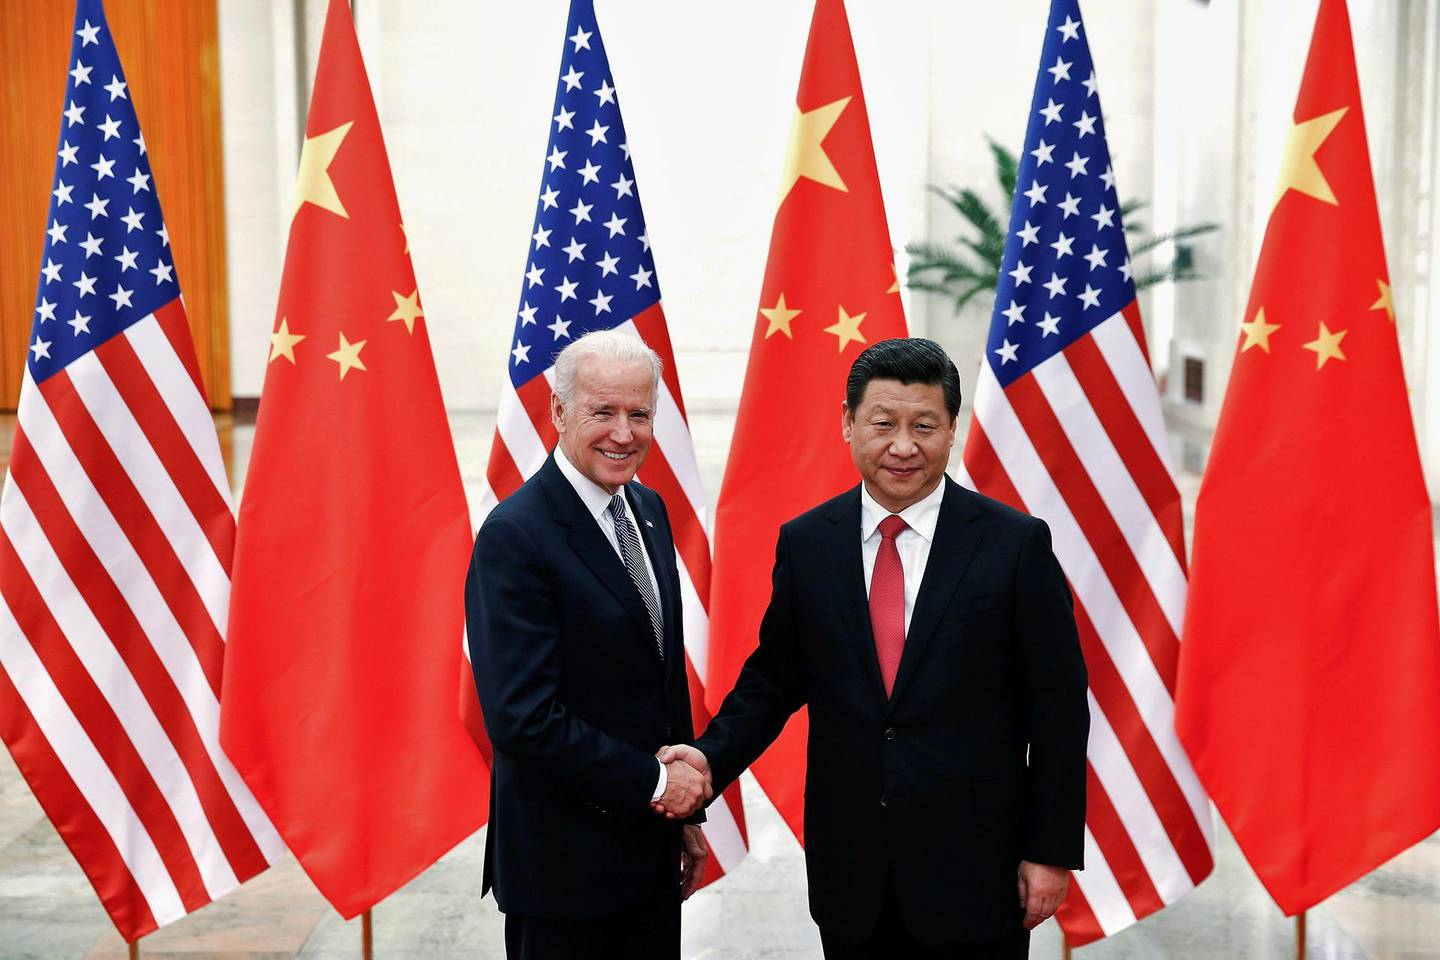 FILE PHOTO: Chinese President Xi Jinping shakes hands with U.S. Vice President Joe Biden (L) inside the Great Hall of the People in Beijing December 4, 2013. REUTERS/Lintao Zhang/Pool/File Photo